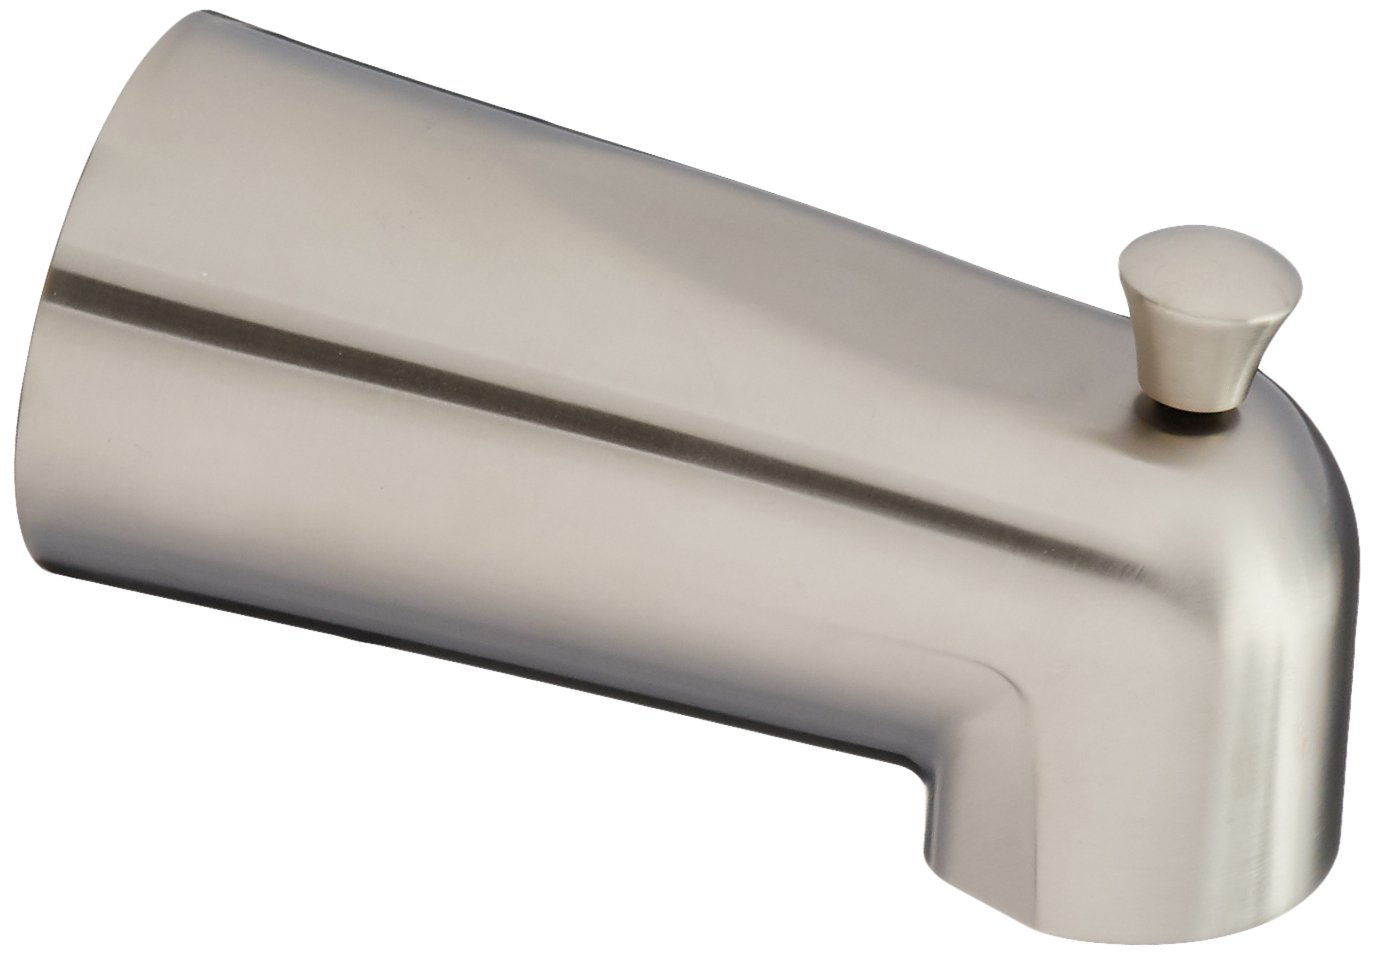 Delta Faucet RP48718SS Tub Spout for Pull-Up Diverter, Stainless by DELTA FAUCET